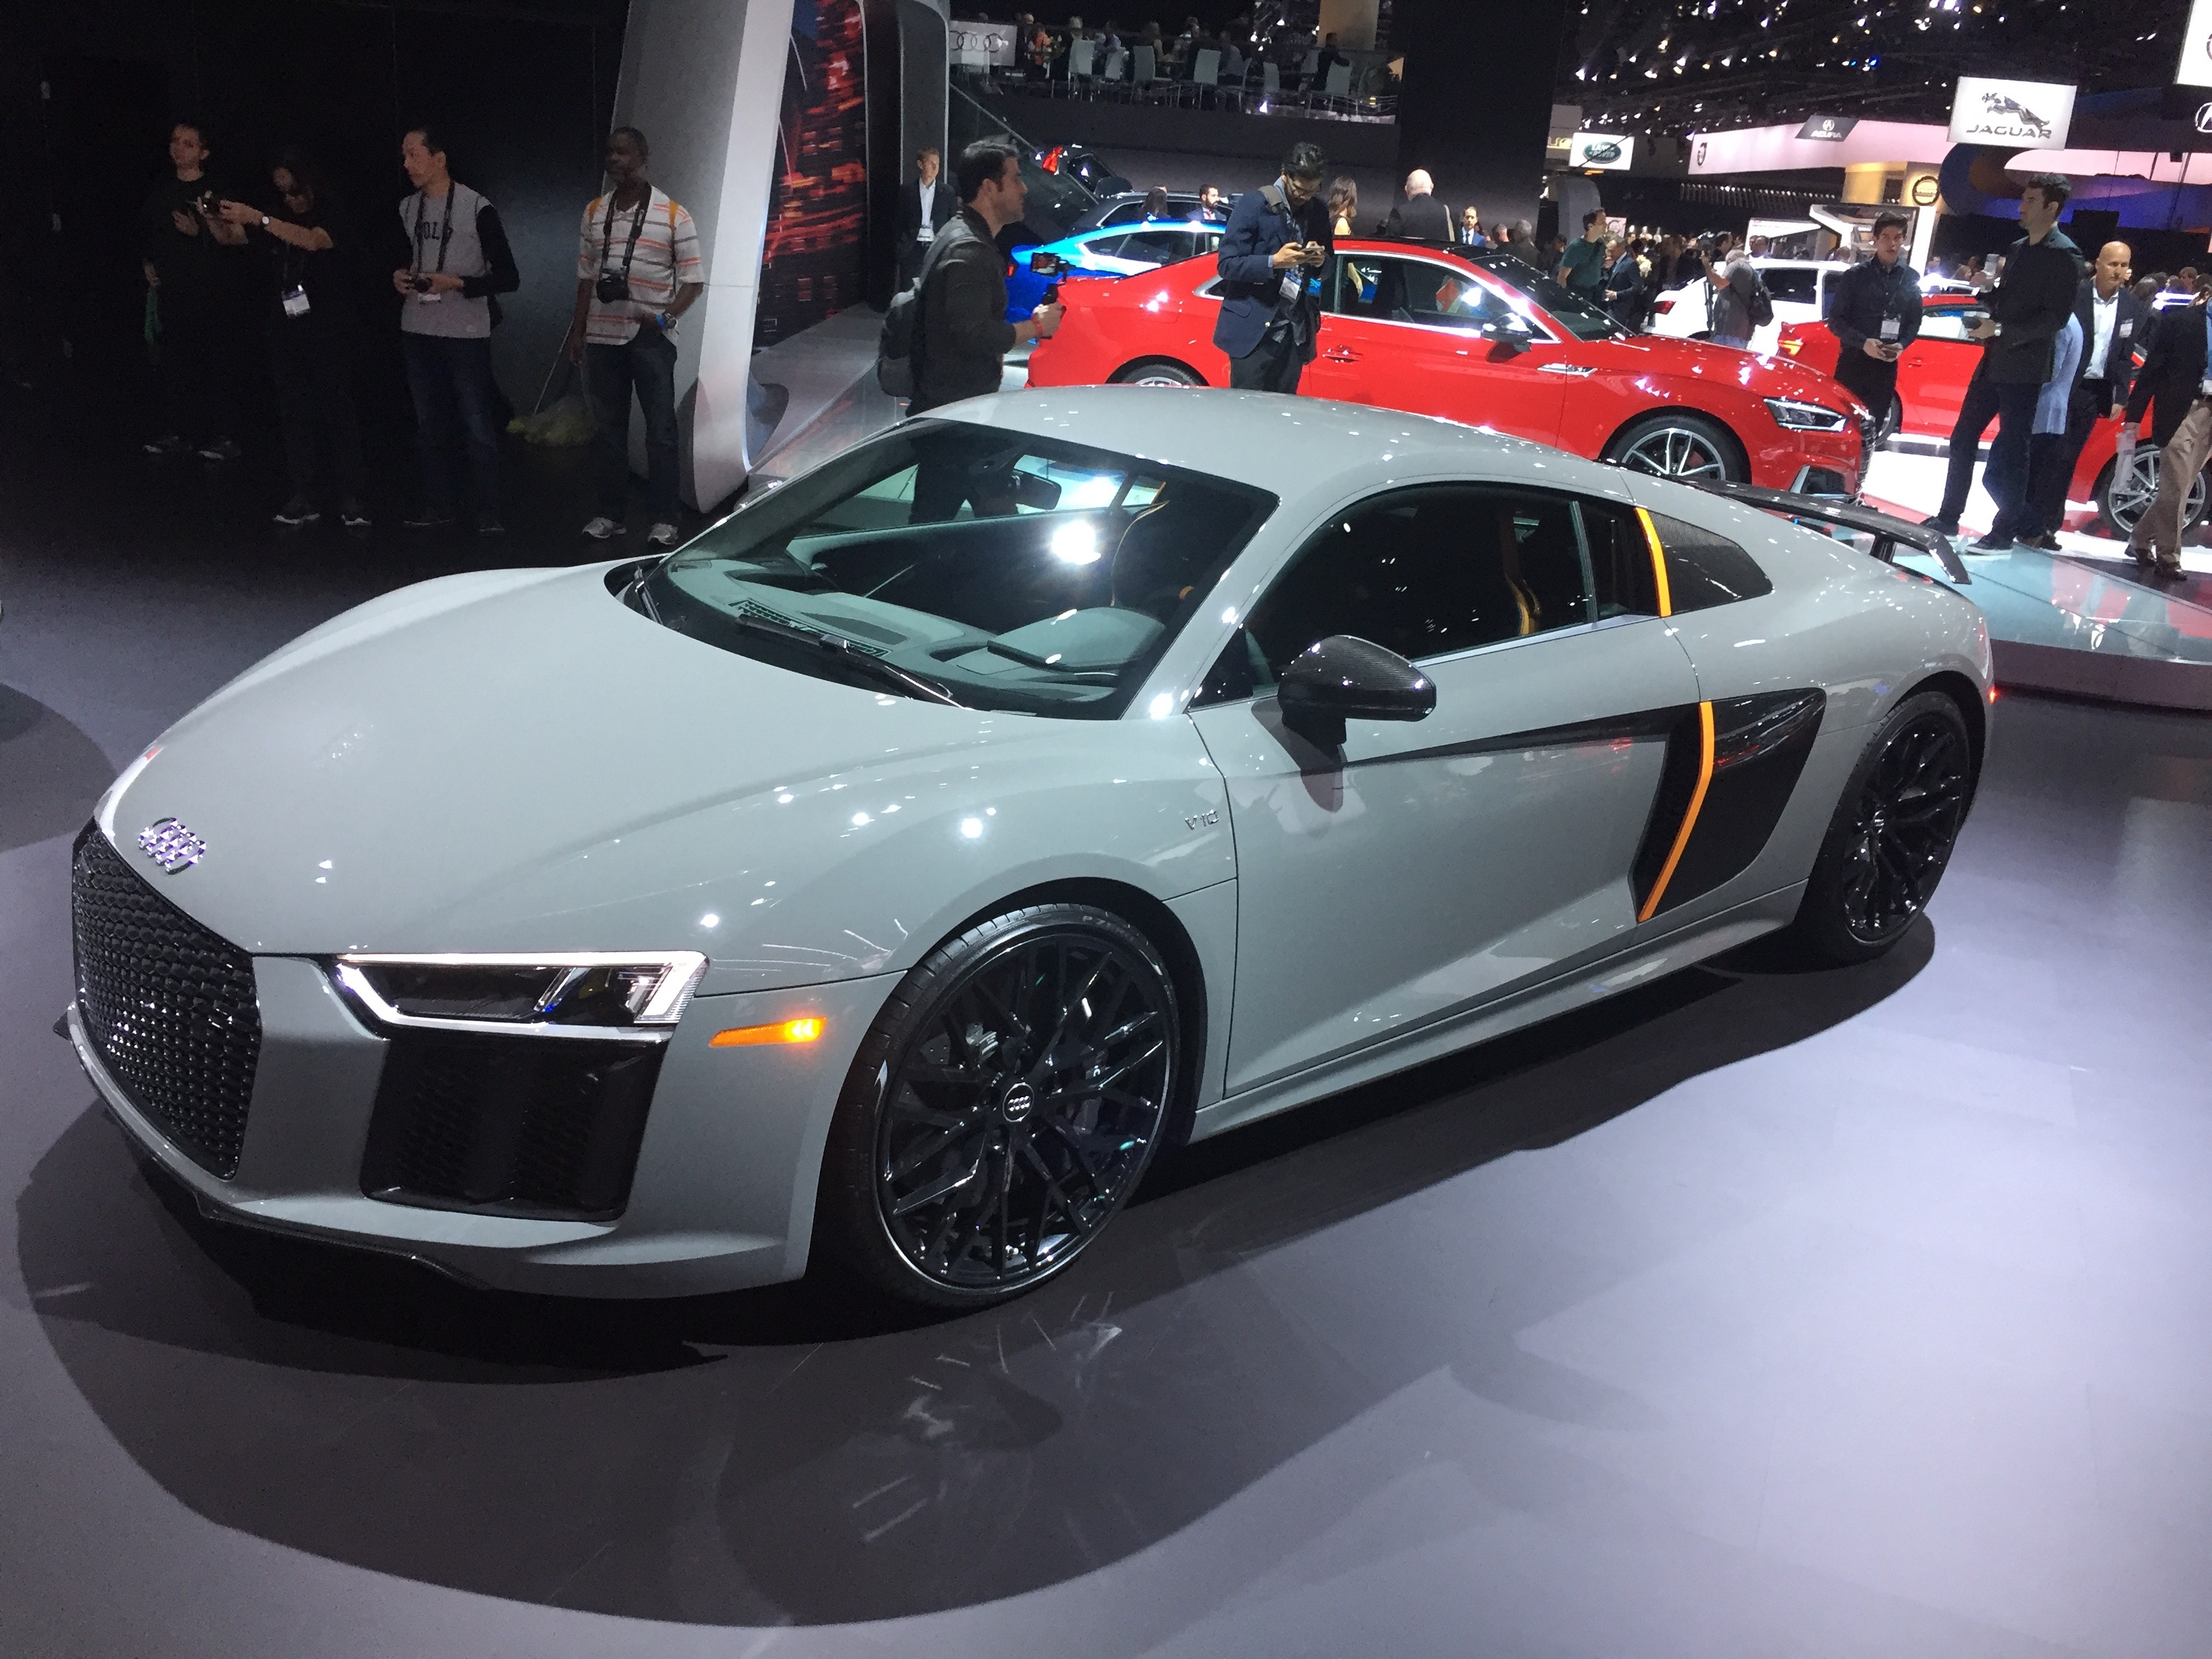 2017 Audi R8 V10 Plus Exclusive Edition With Laser Lights